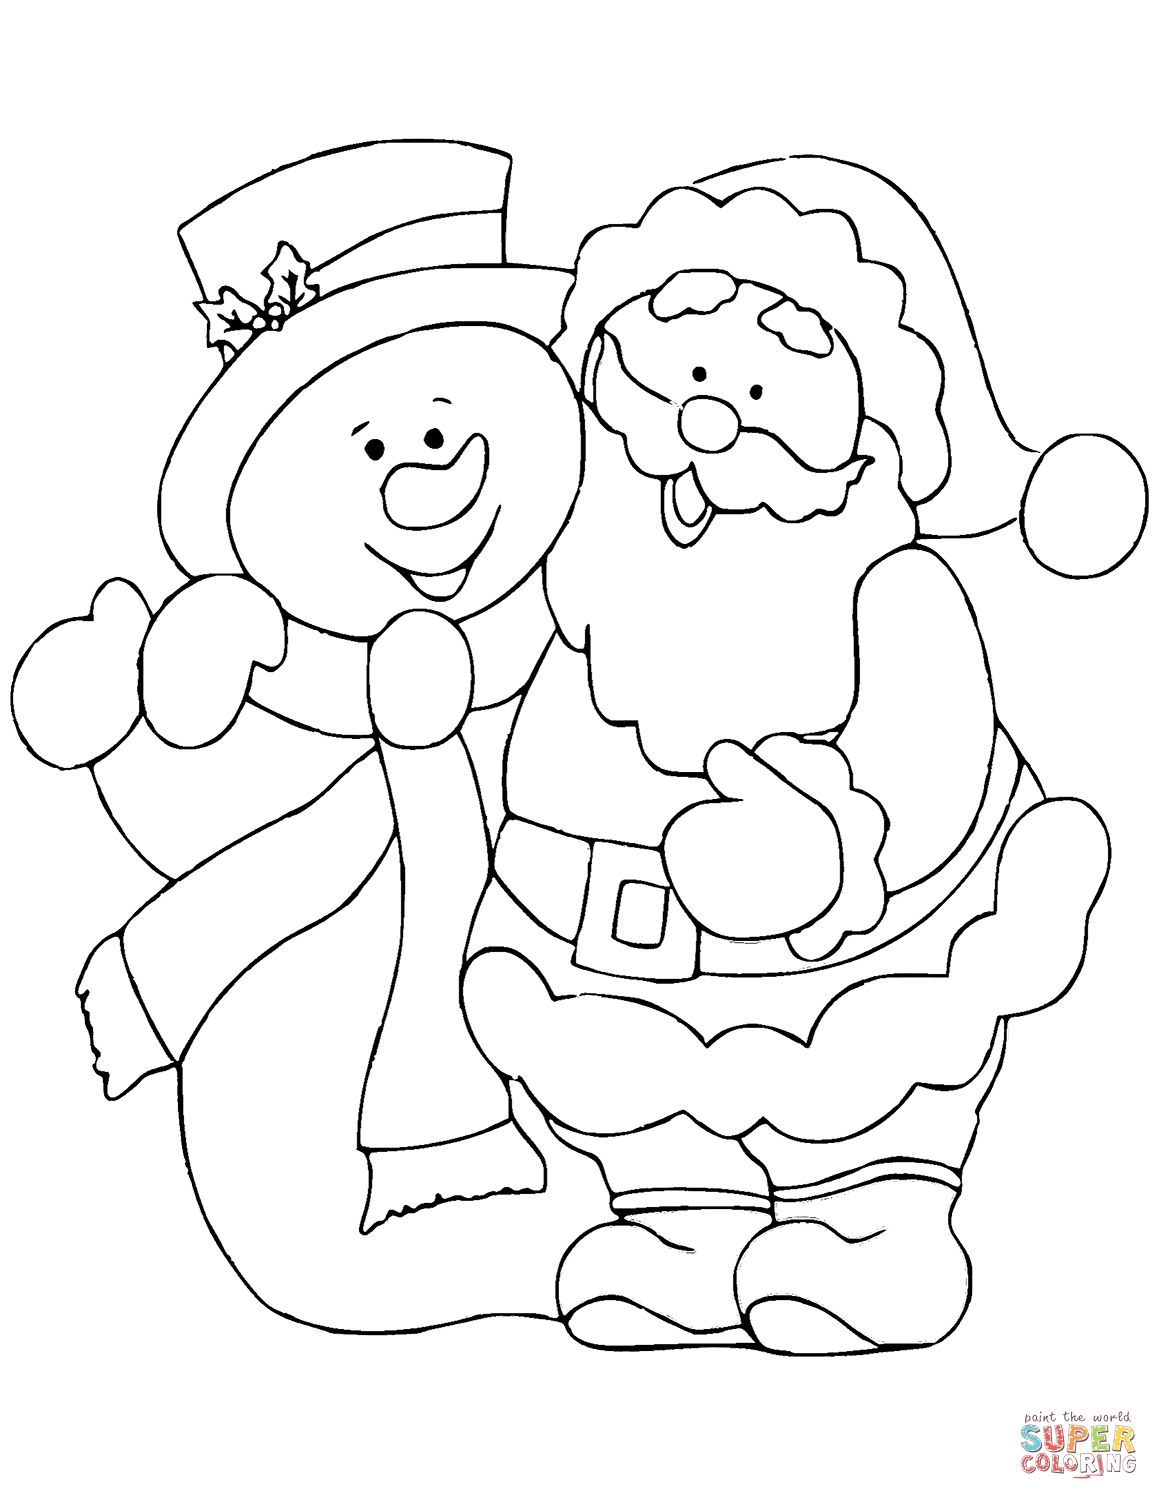 Santa Claus With Snowman Coloring Page